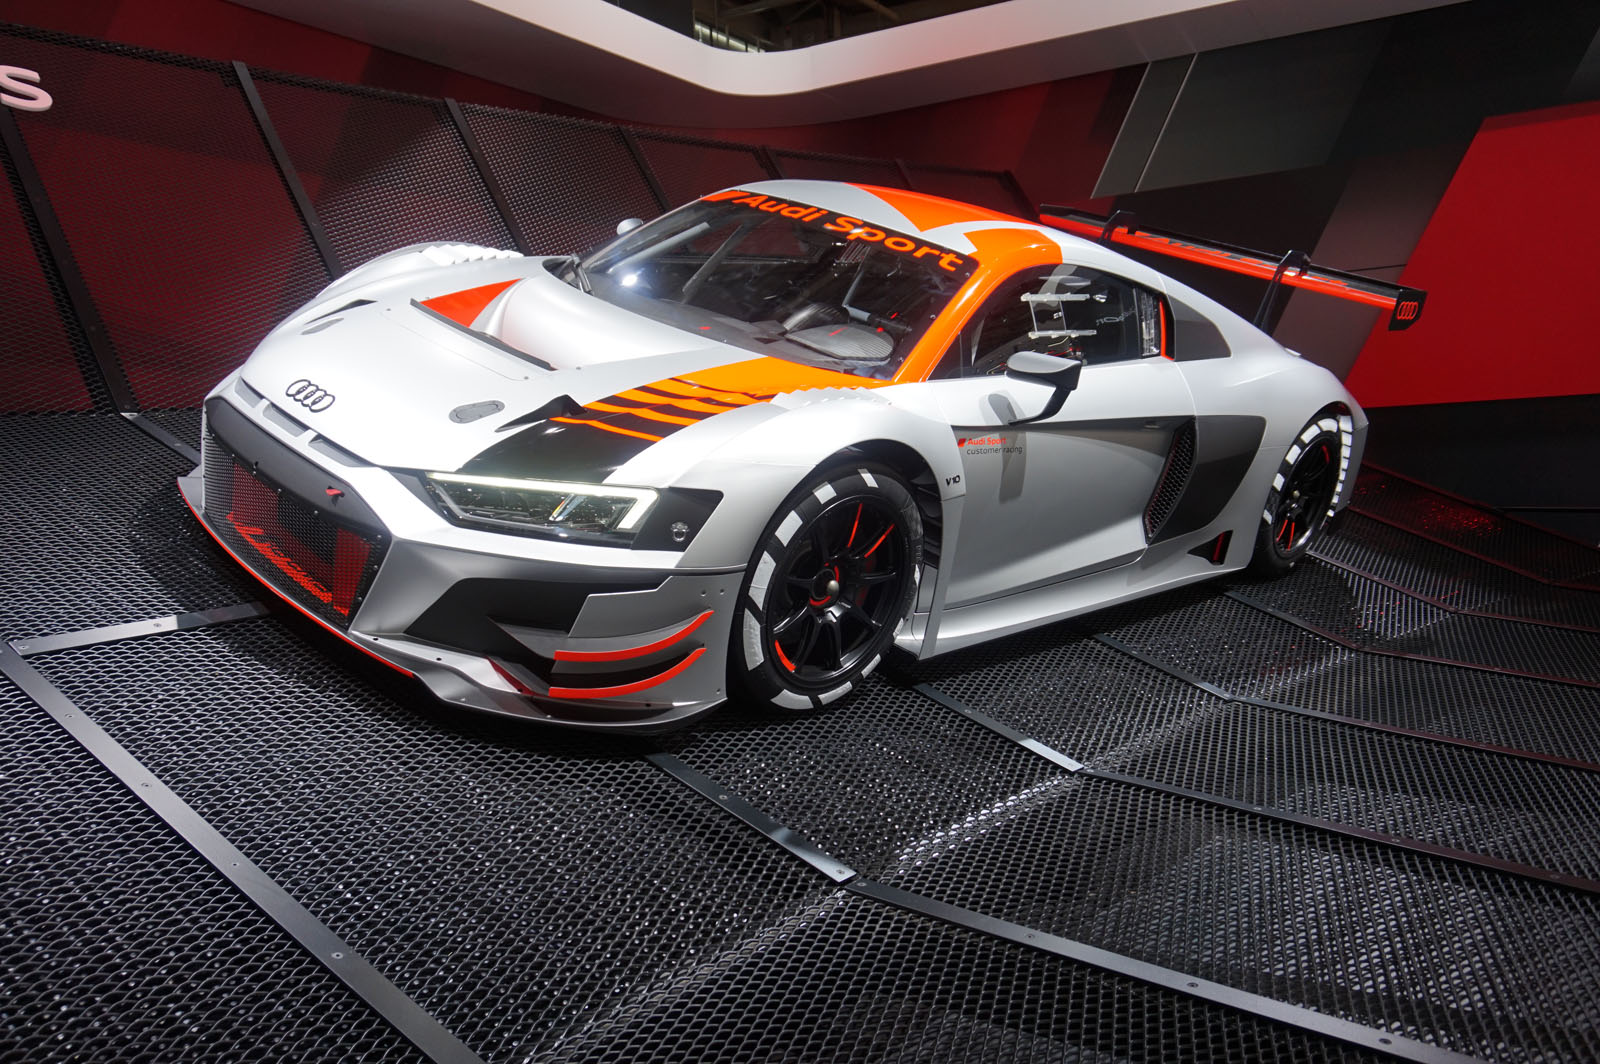 2019 Audi R8 Lms Gt3 Is Ready To Go Racing Autoguide Com News